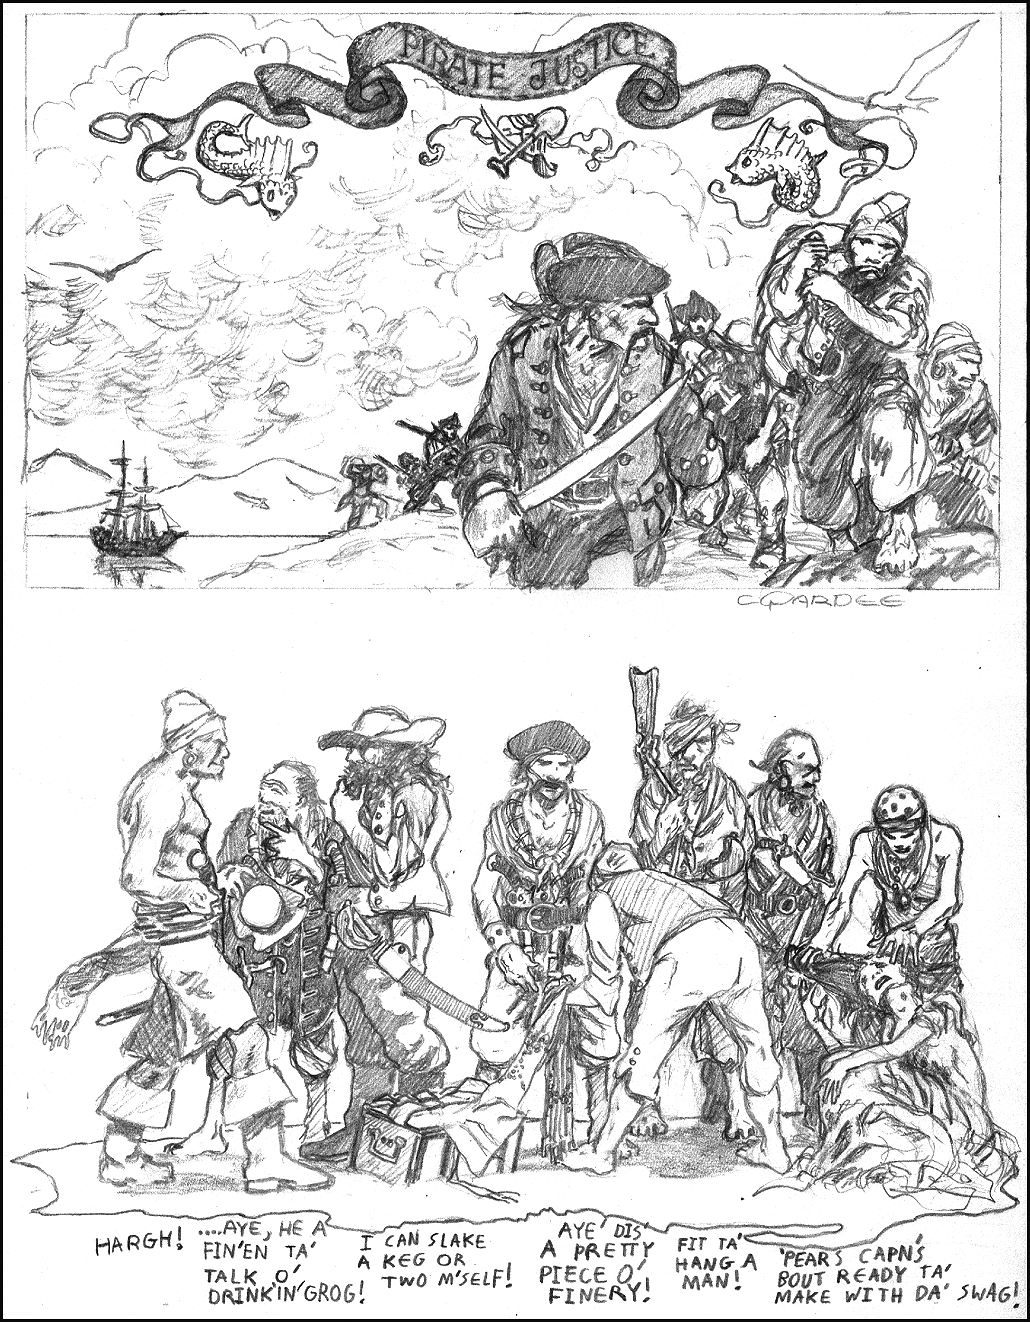 Pin Yankee Doodle Coloring Page On Pinterest Yankee Doodle Coloring Page